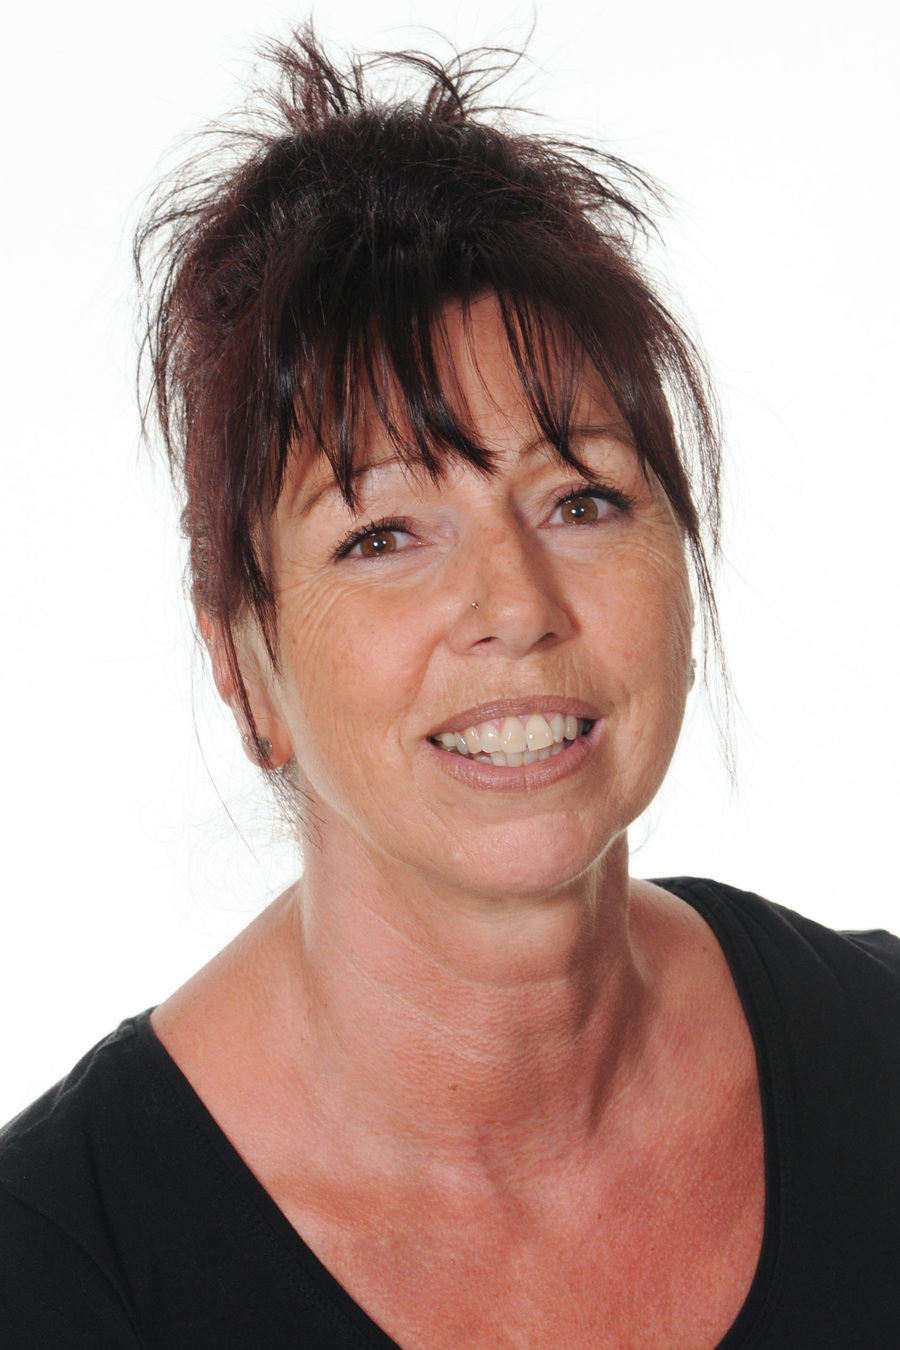 Sharon Lewis NVQ3; Learning Assistant